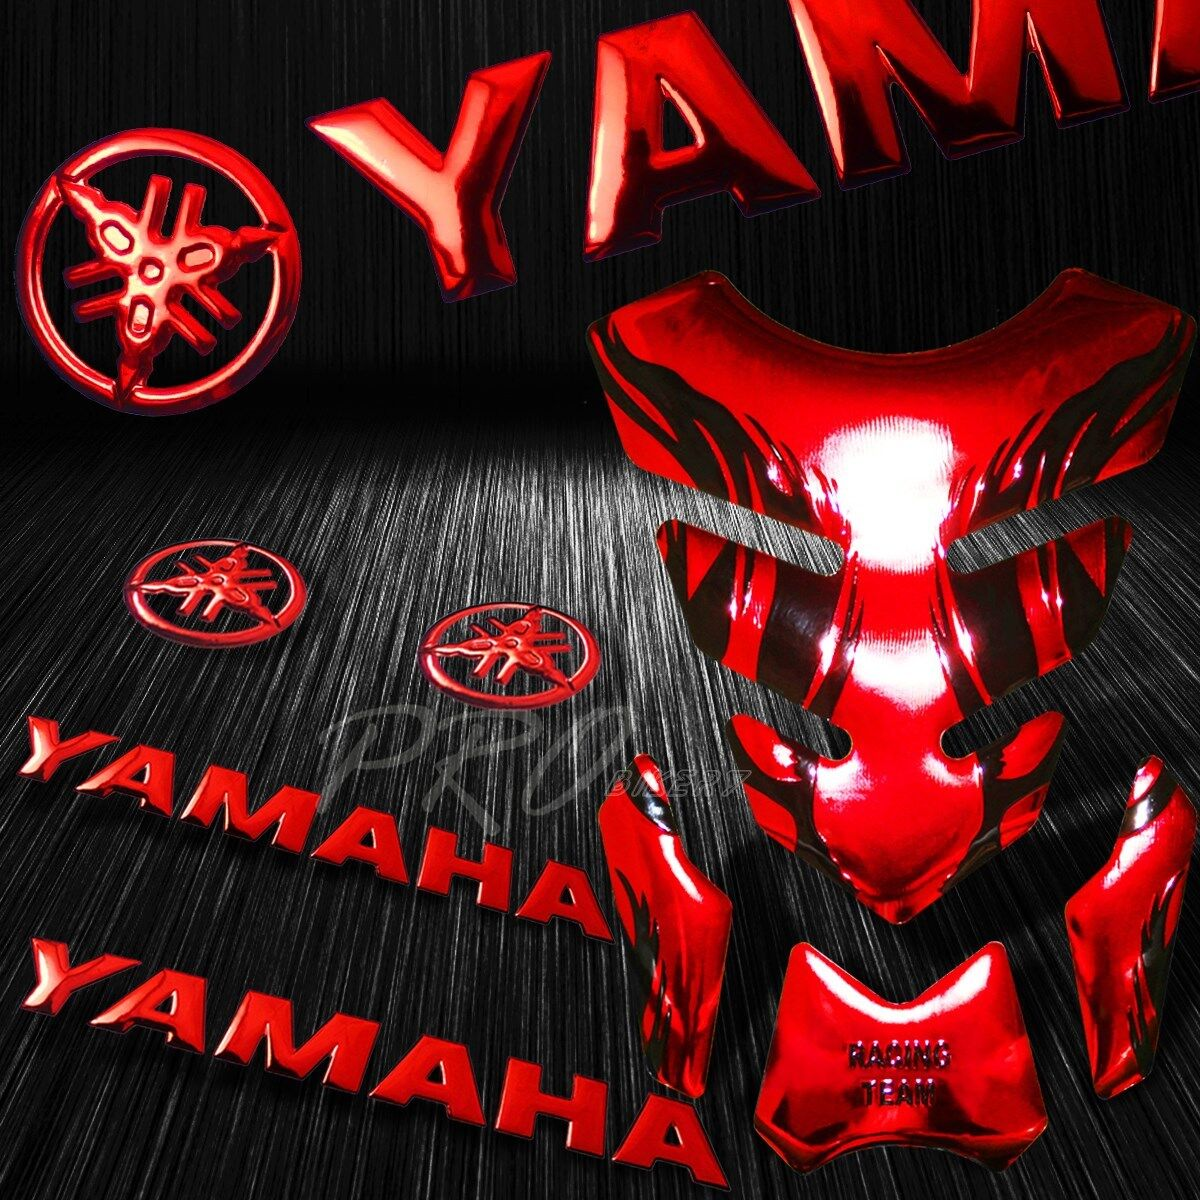 Details about chrome red tribal fire tank pad 8 for yamaha logo letter fairing emblem sticker